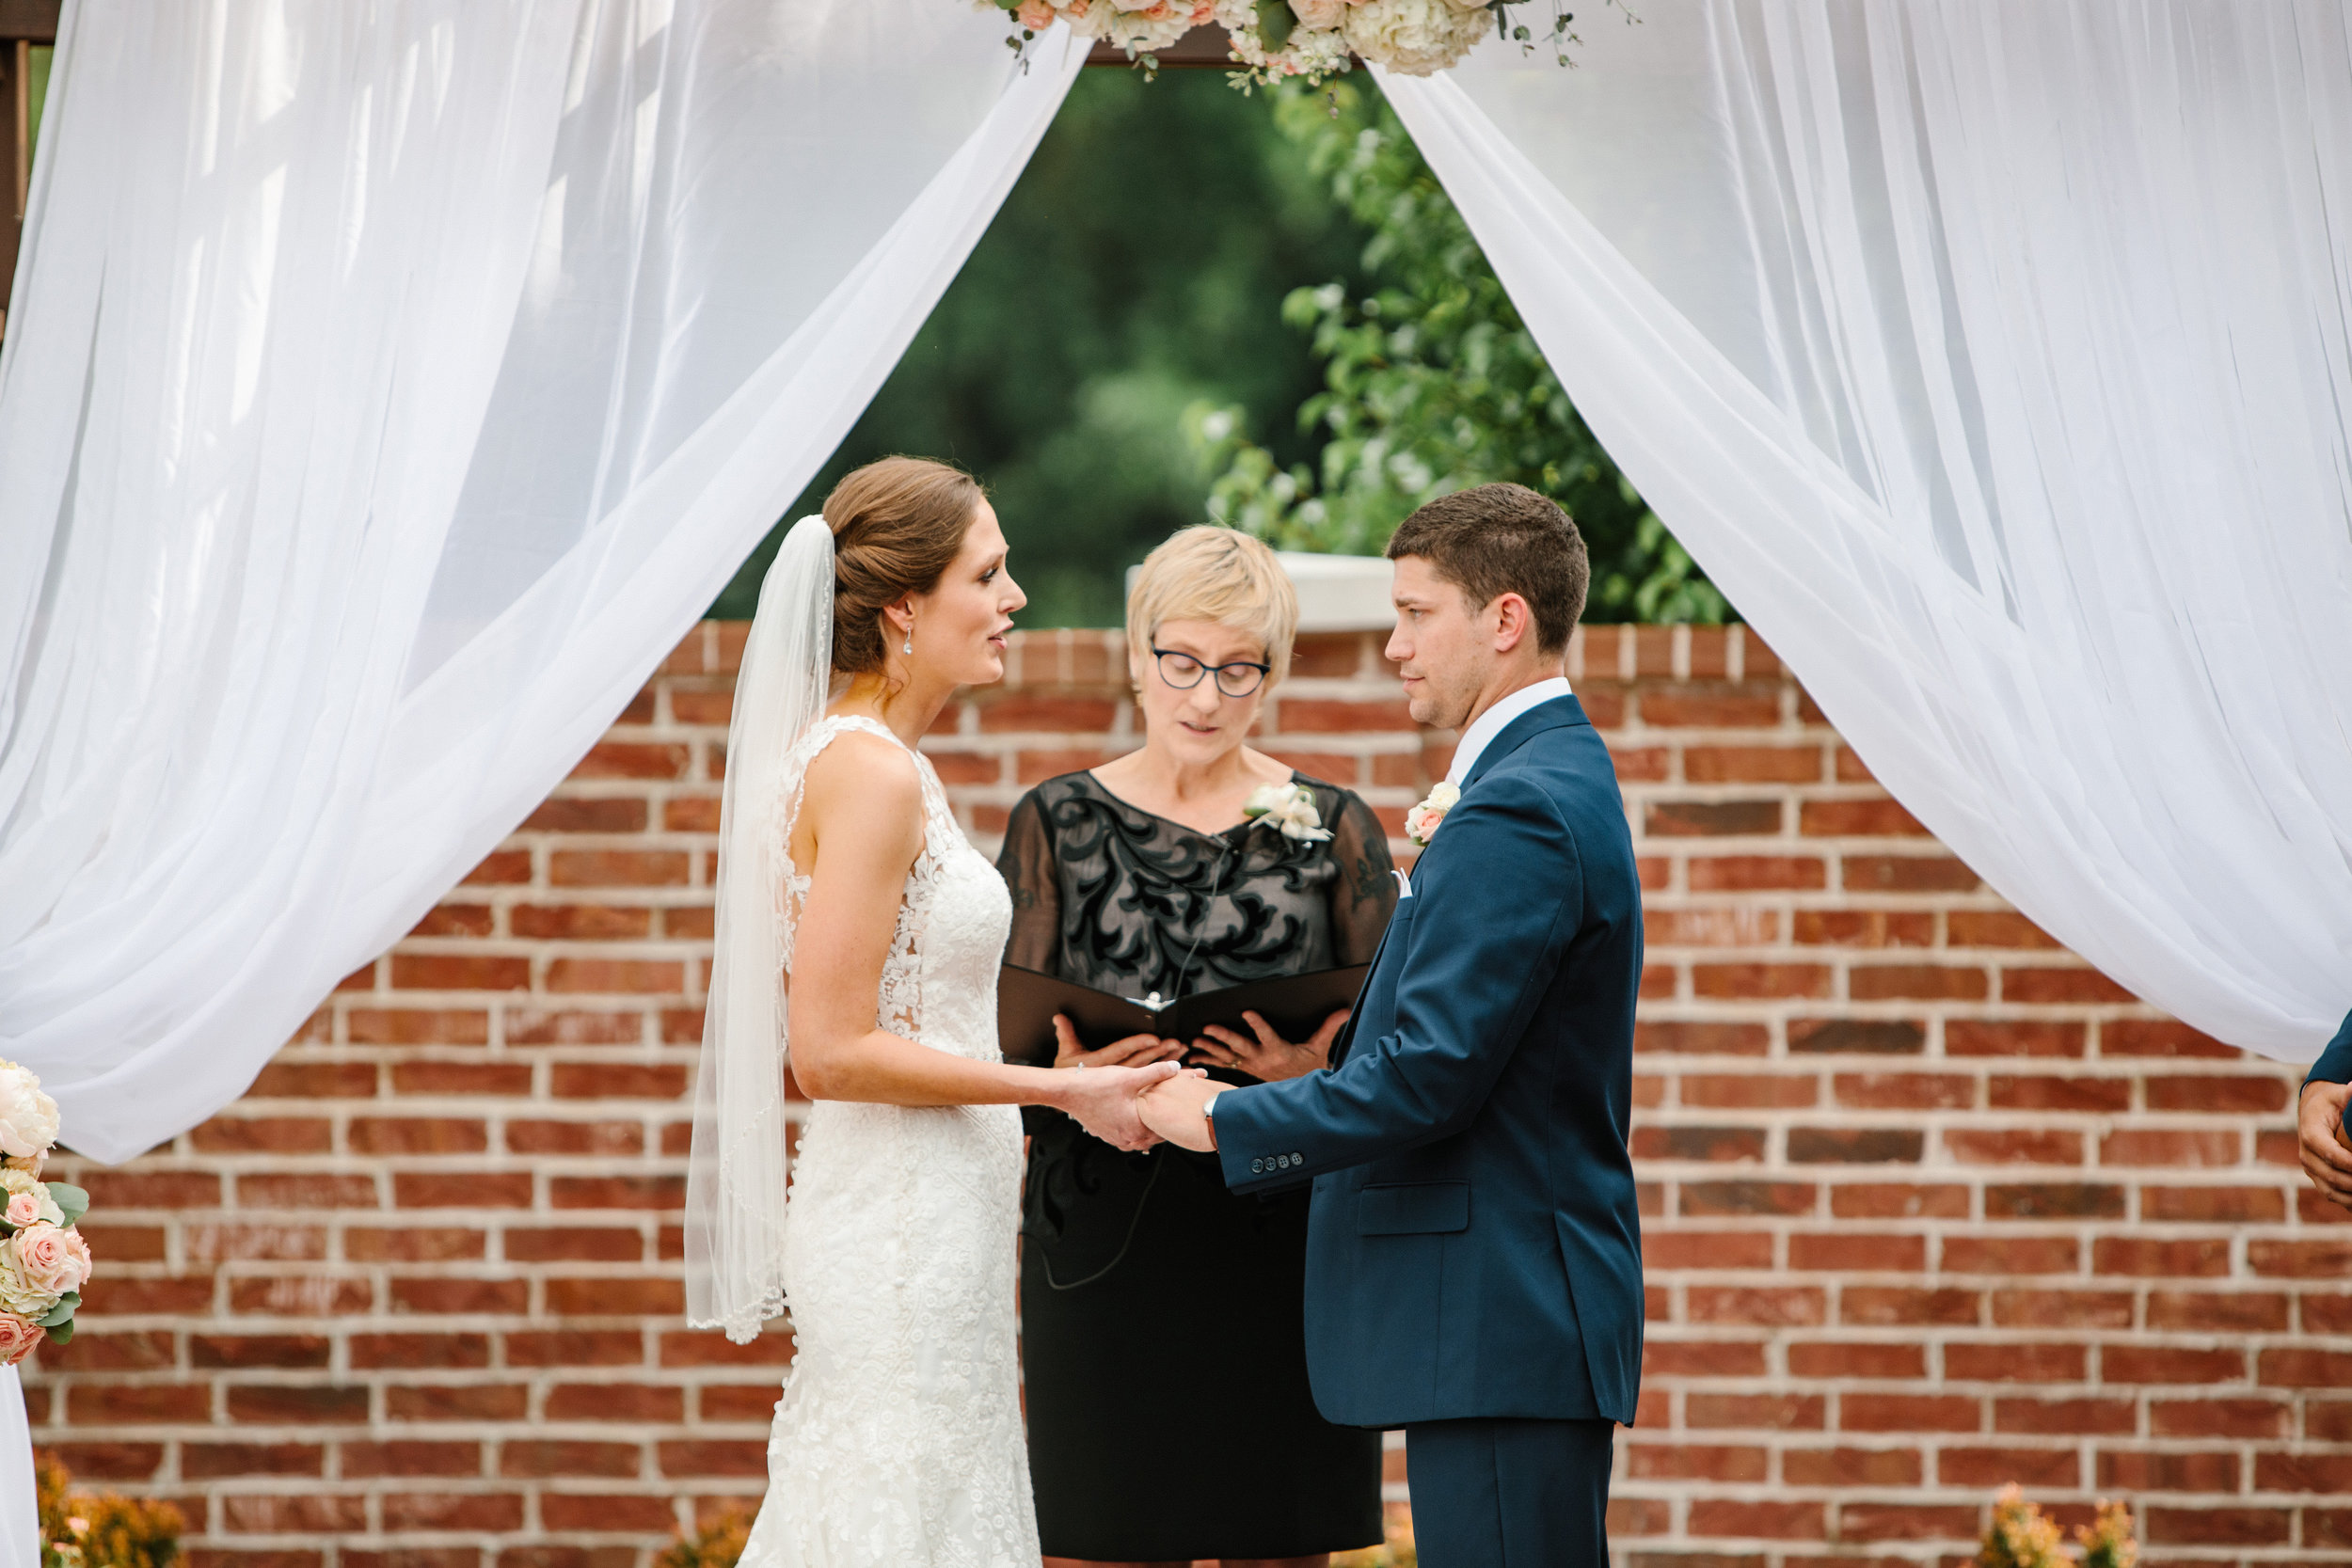 des moines iowa outdoor weddings